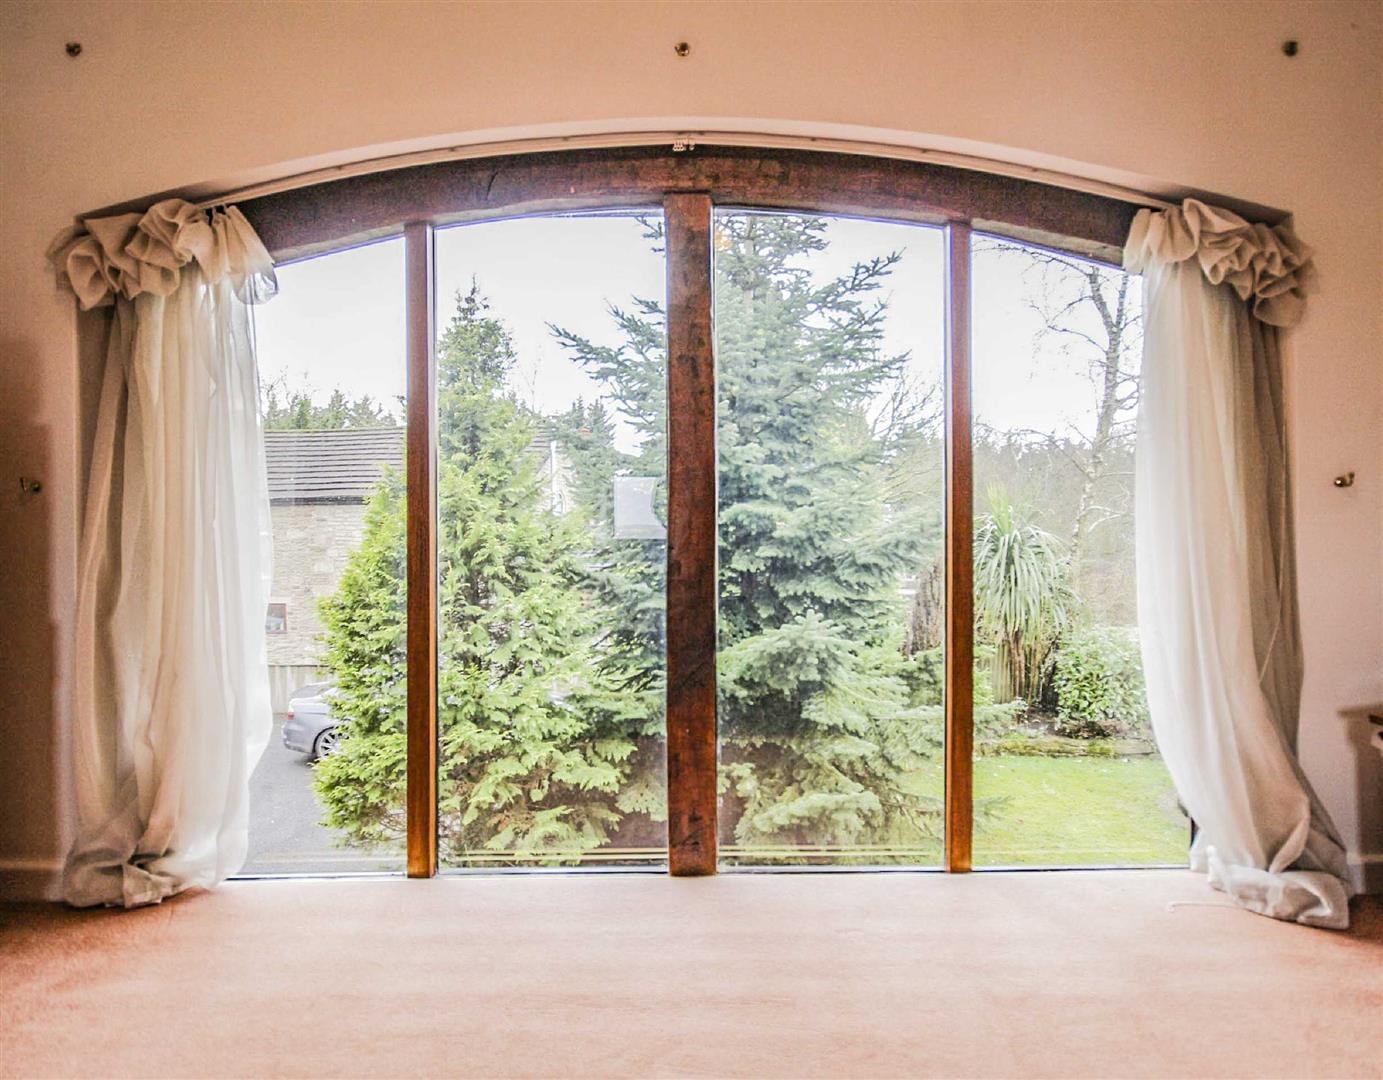 3 Bedroom Barn Conversion For Sale - Image 24